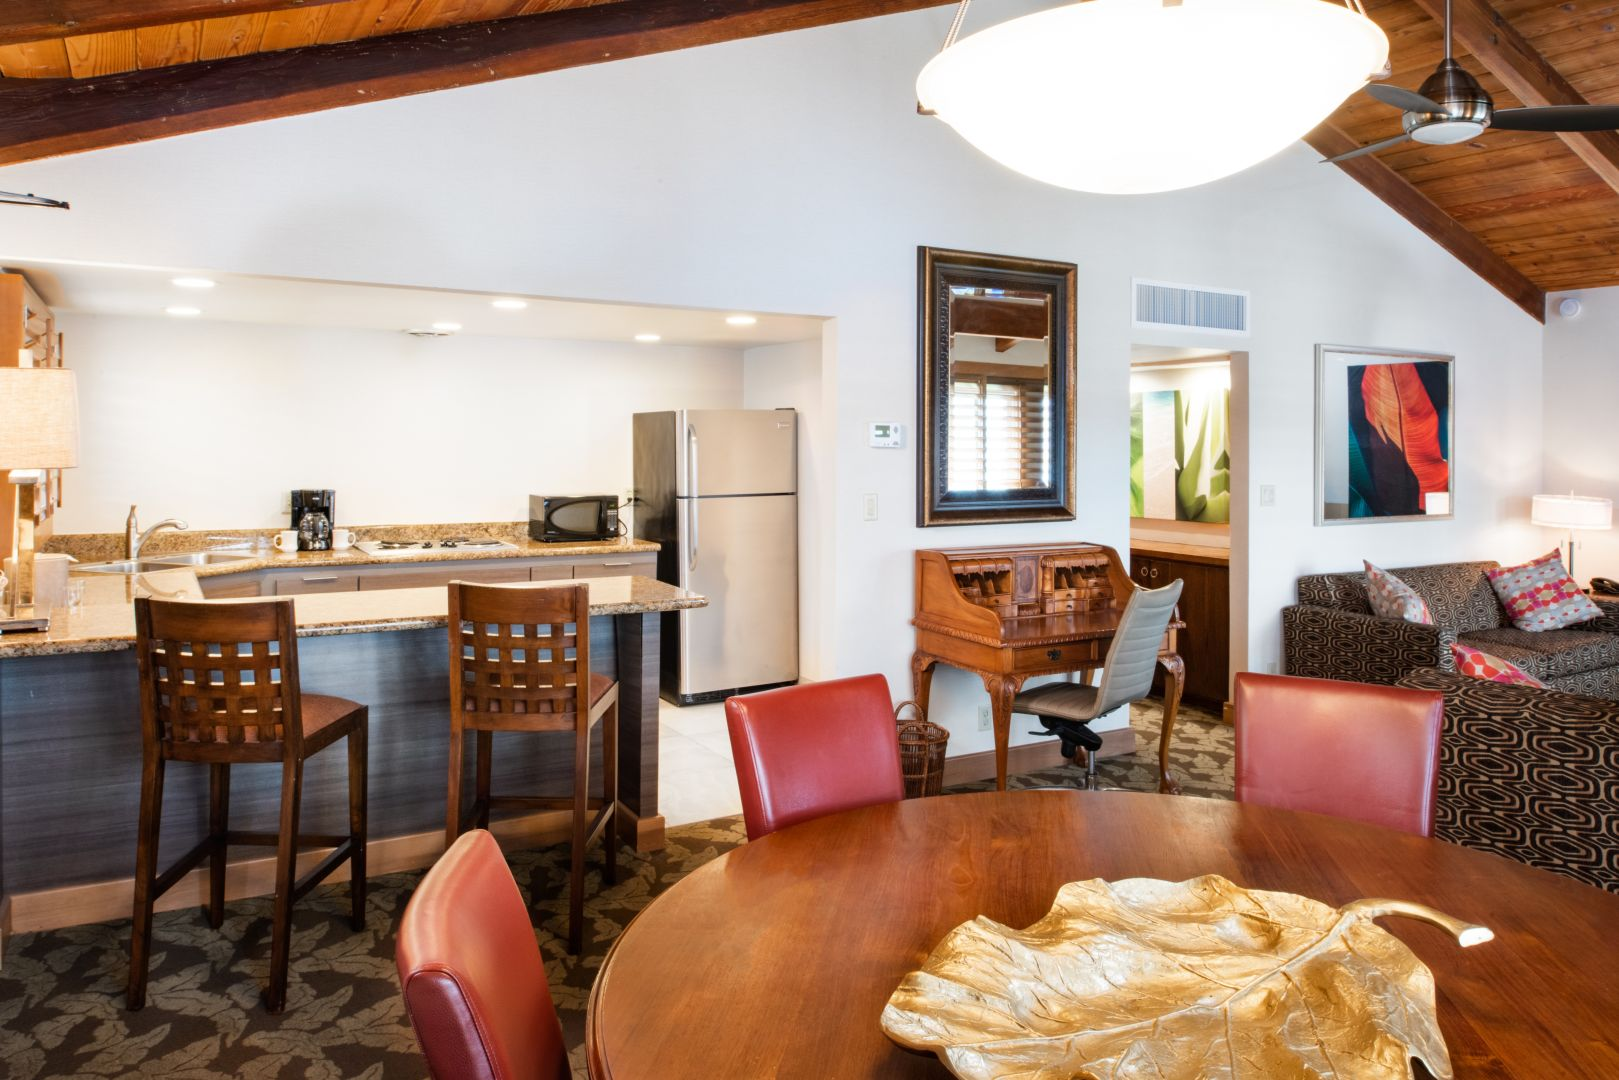 A kitchen and bar area in the Grand Marina Suite at Humphrey's Half Moon Inn.